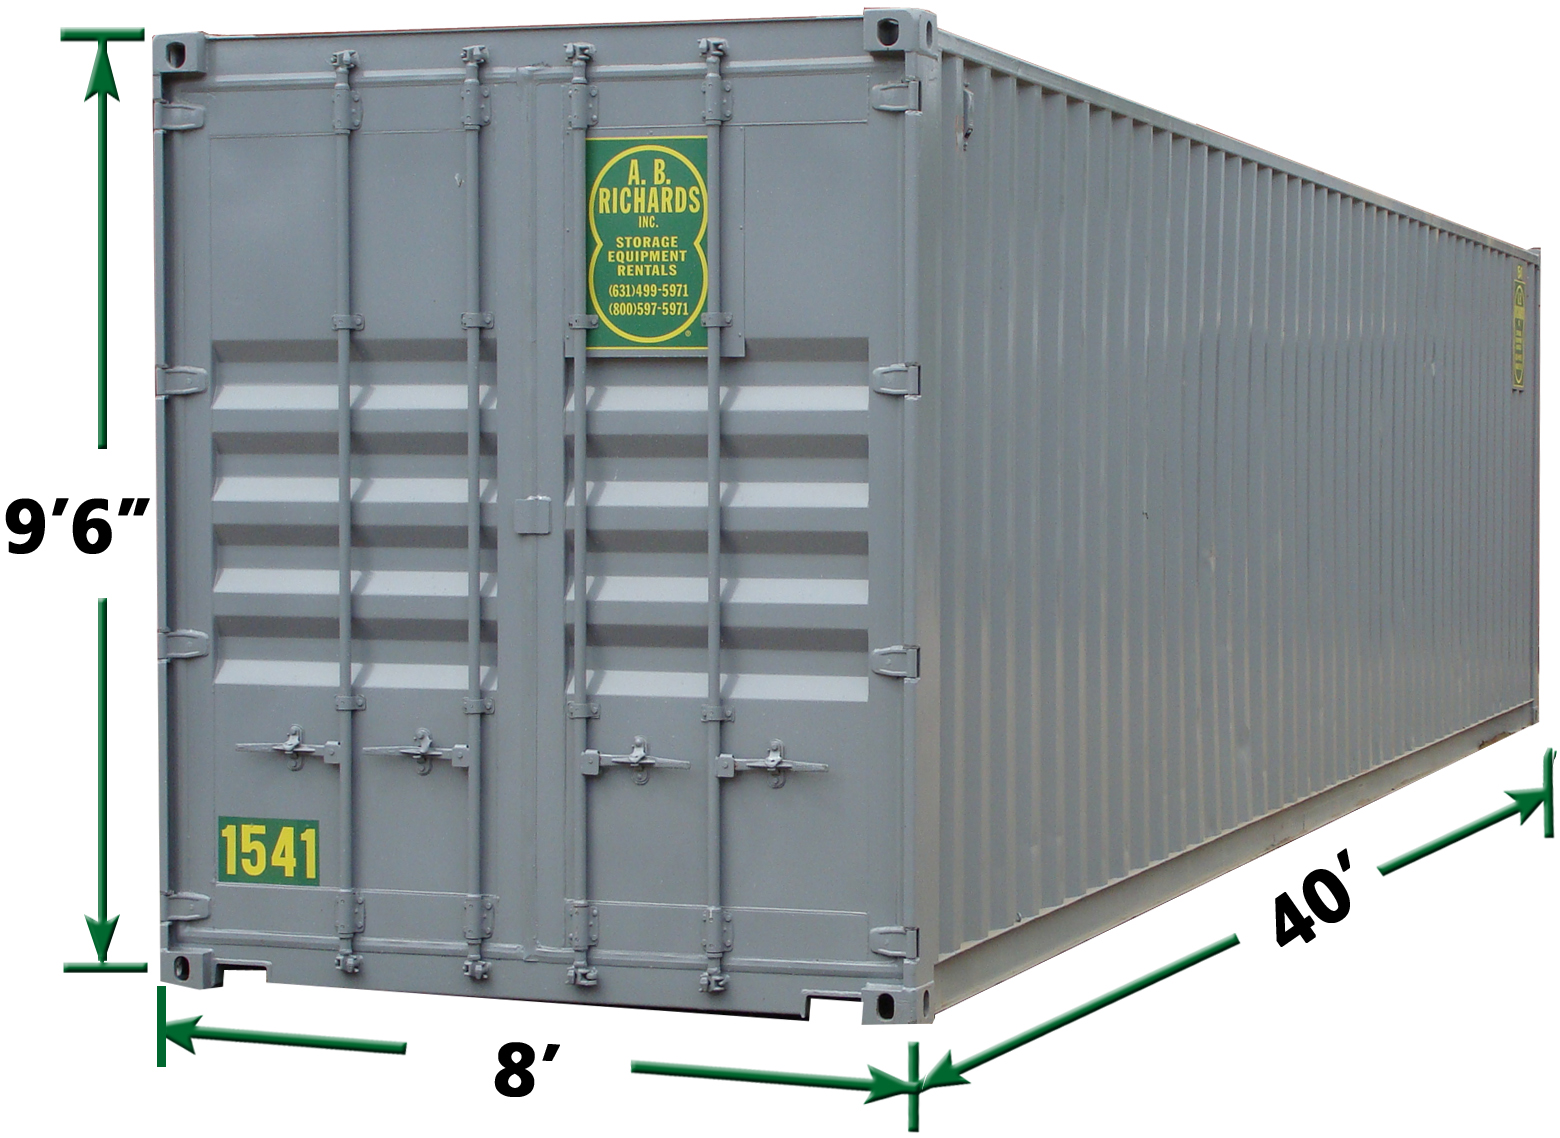 40' Jumbo Construction Storage Container Rentals in PA